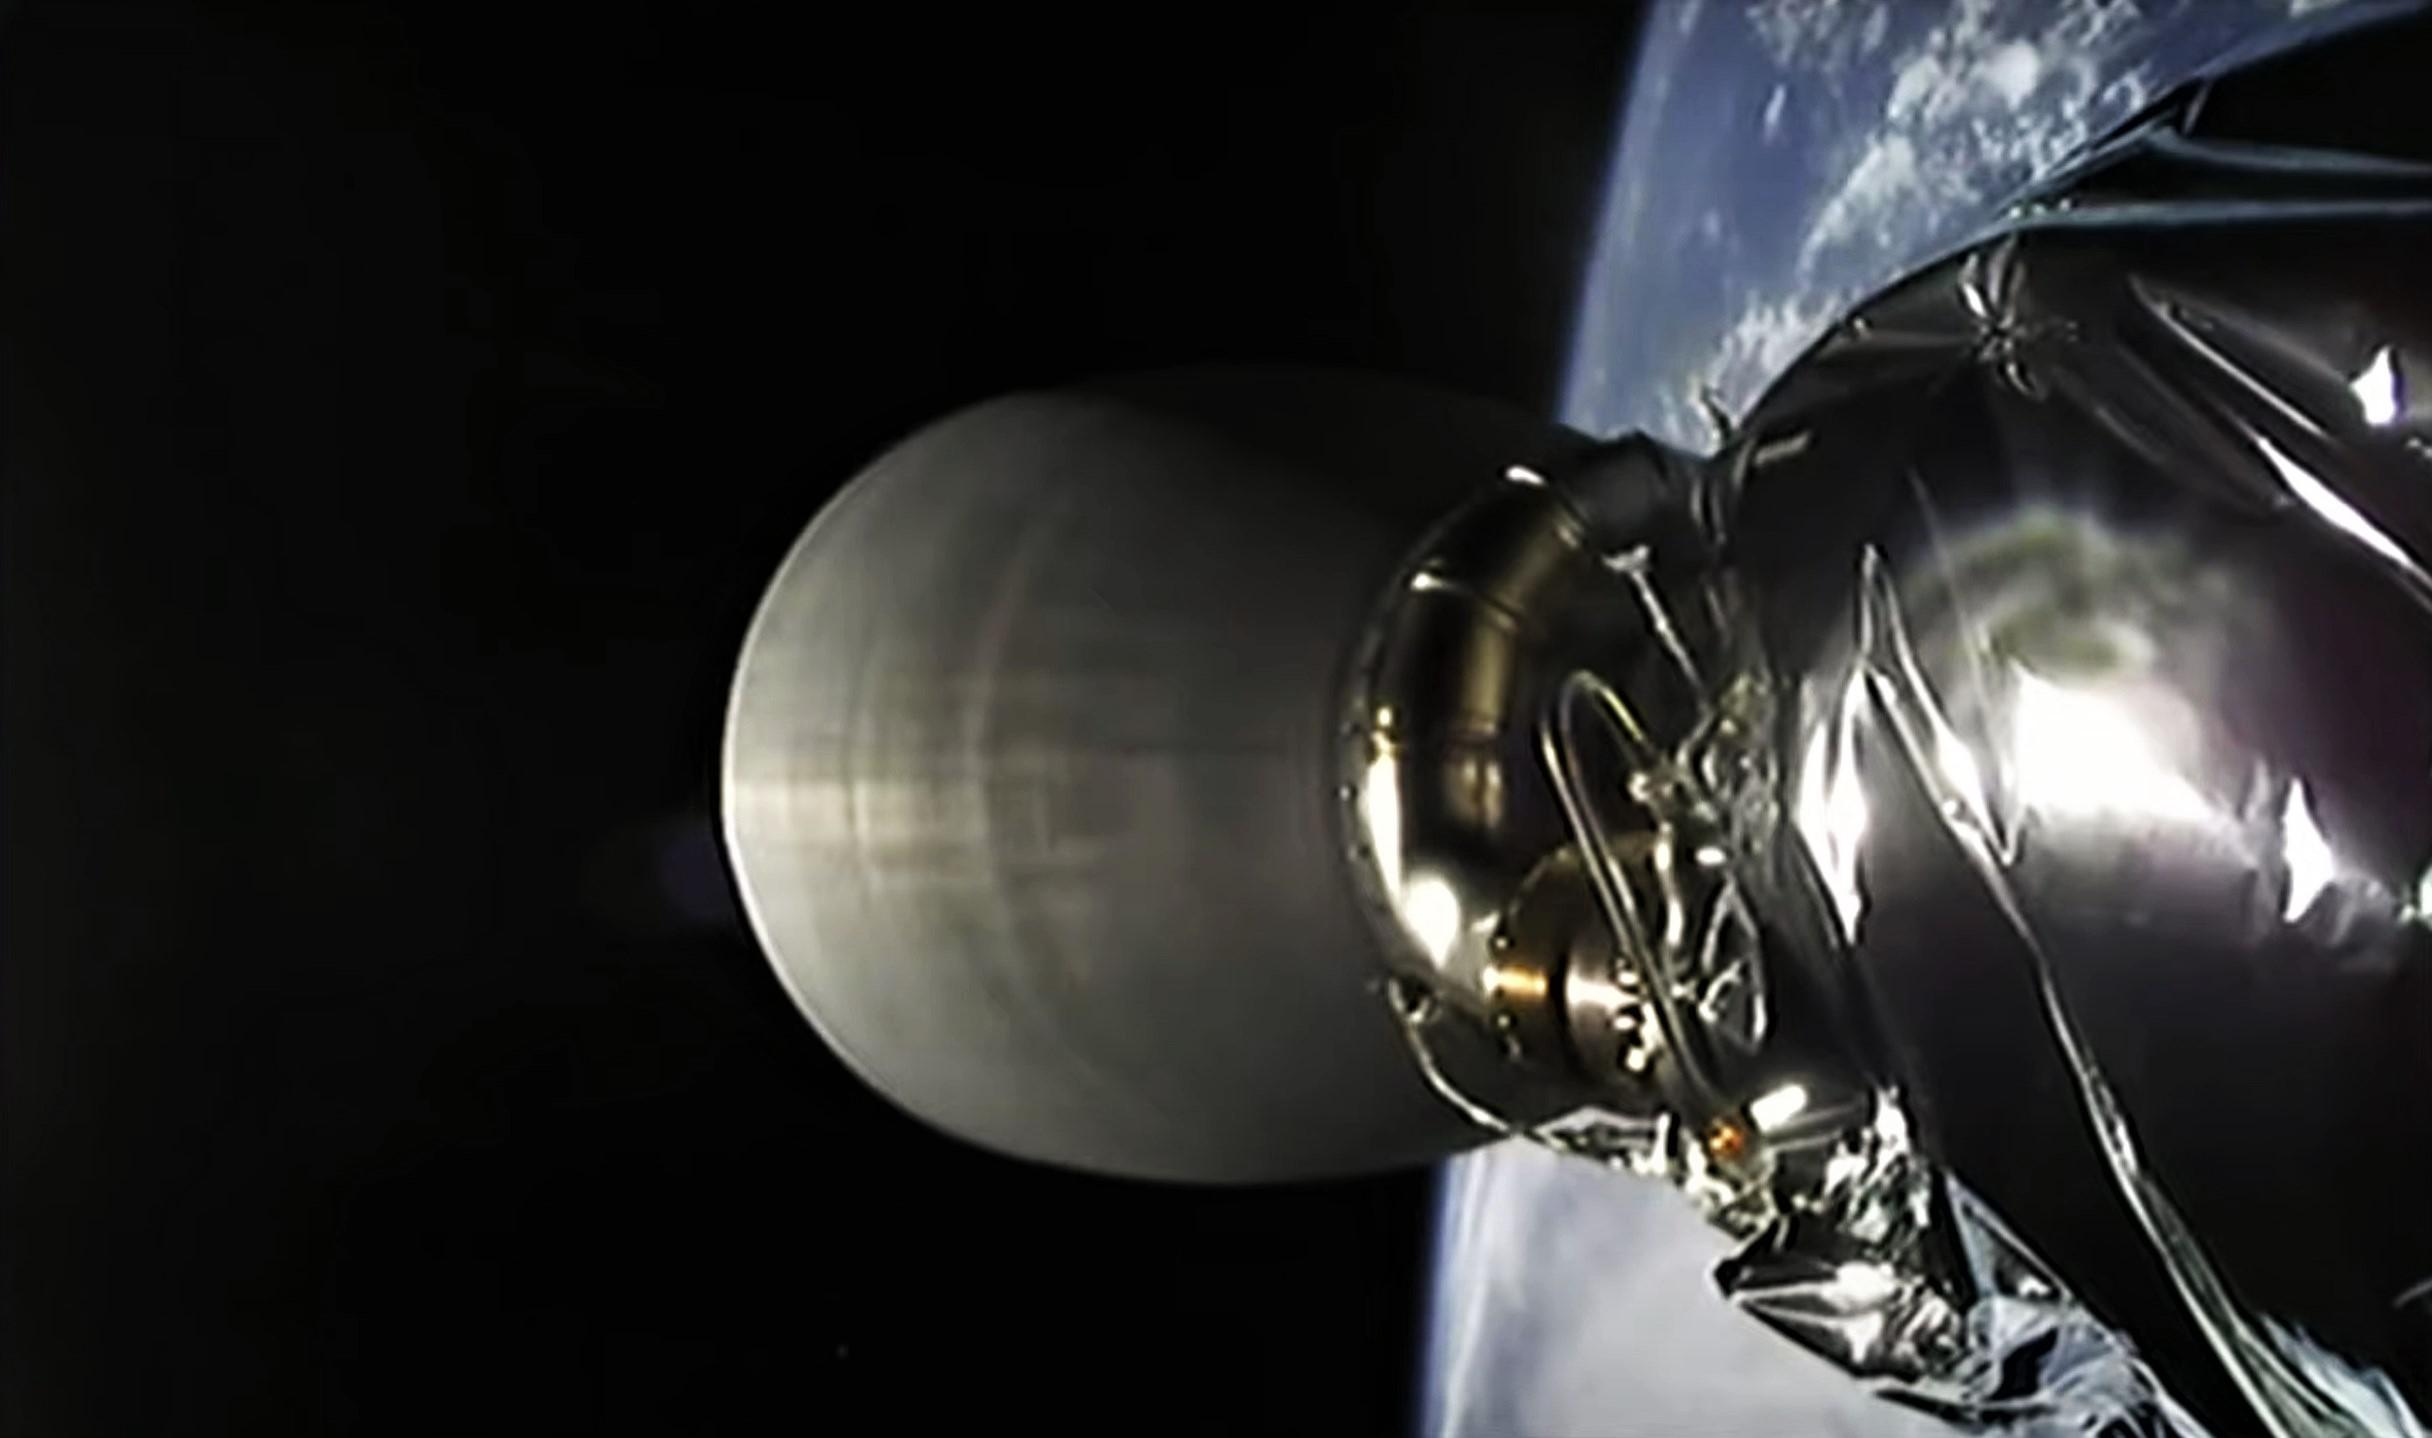 Starlink-20 Falcon 9 B1058 LC-40 031121 webcast (SpaceX) SES2 4